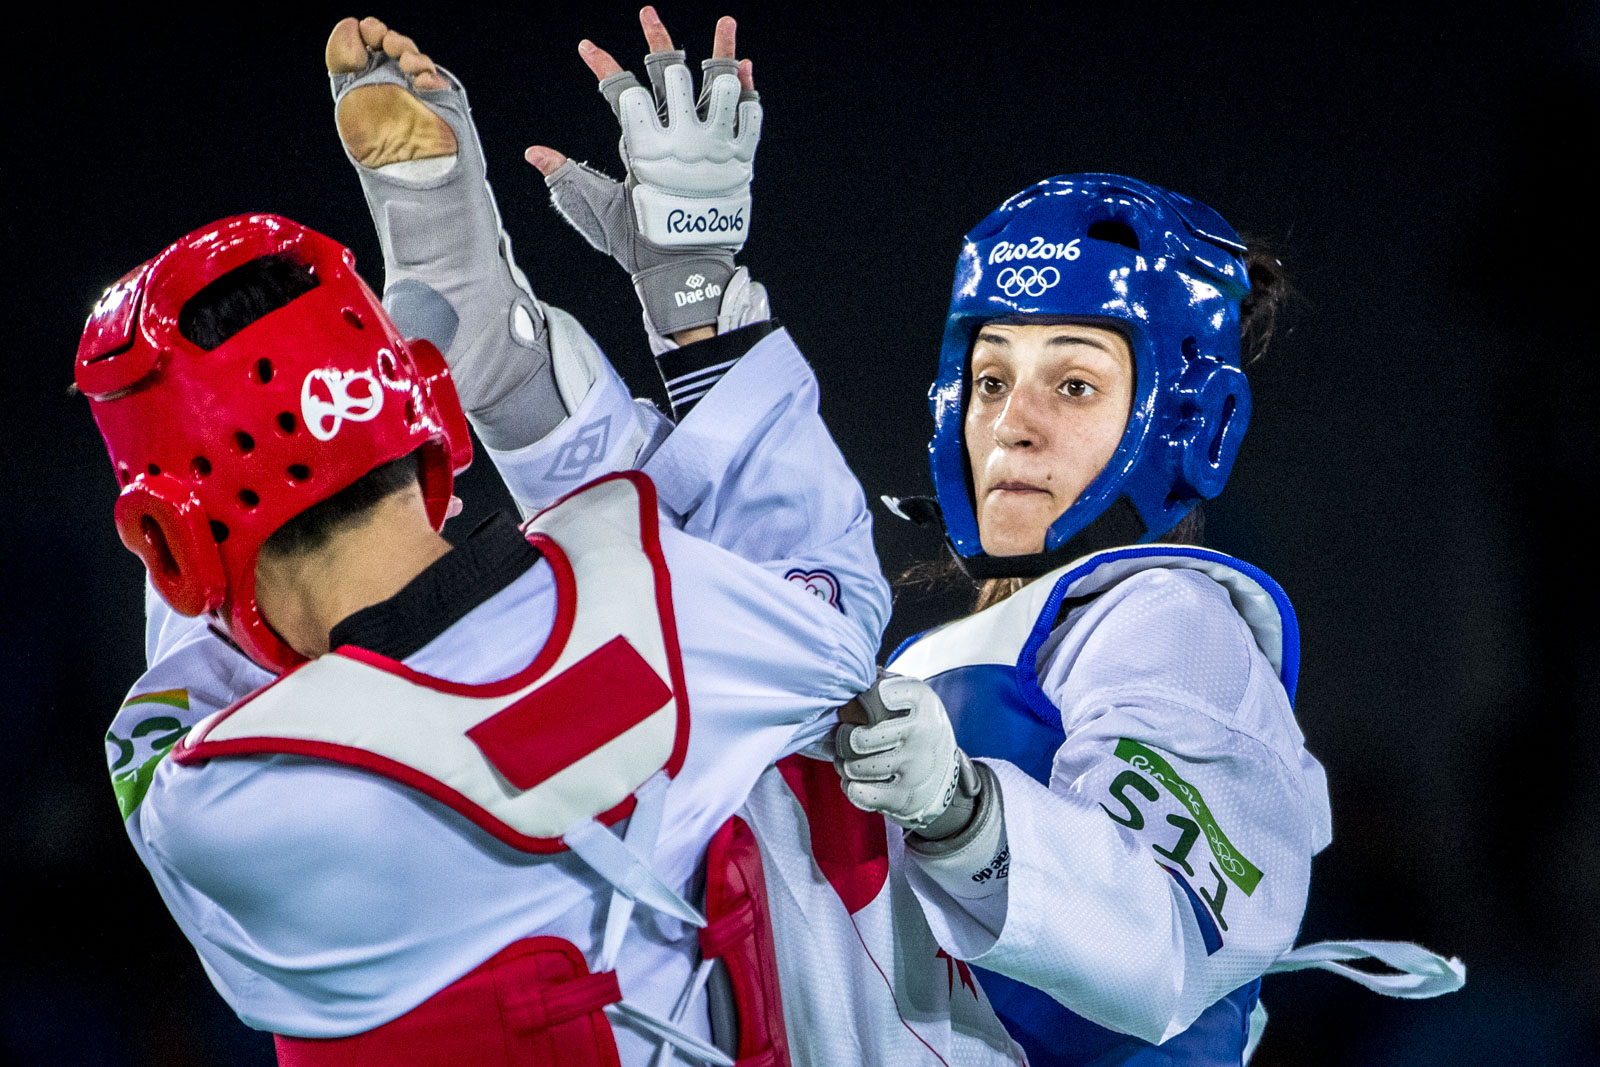 Team Canada's Melissa Pagnotta competes in the repechage round of women's 67kg Taekwondo at Carioca Stadium, Rio de Janeiro, Brazil, Thursday August 18, 2016.    COC Photo/David Jackson